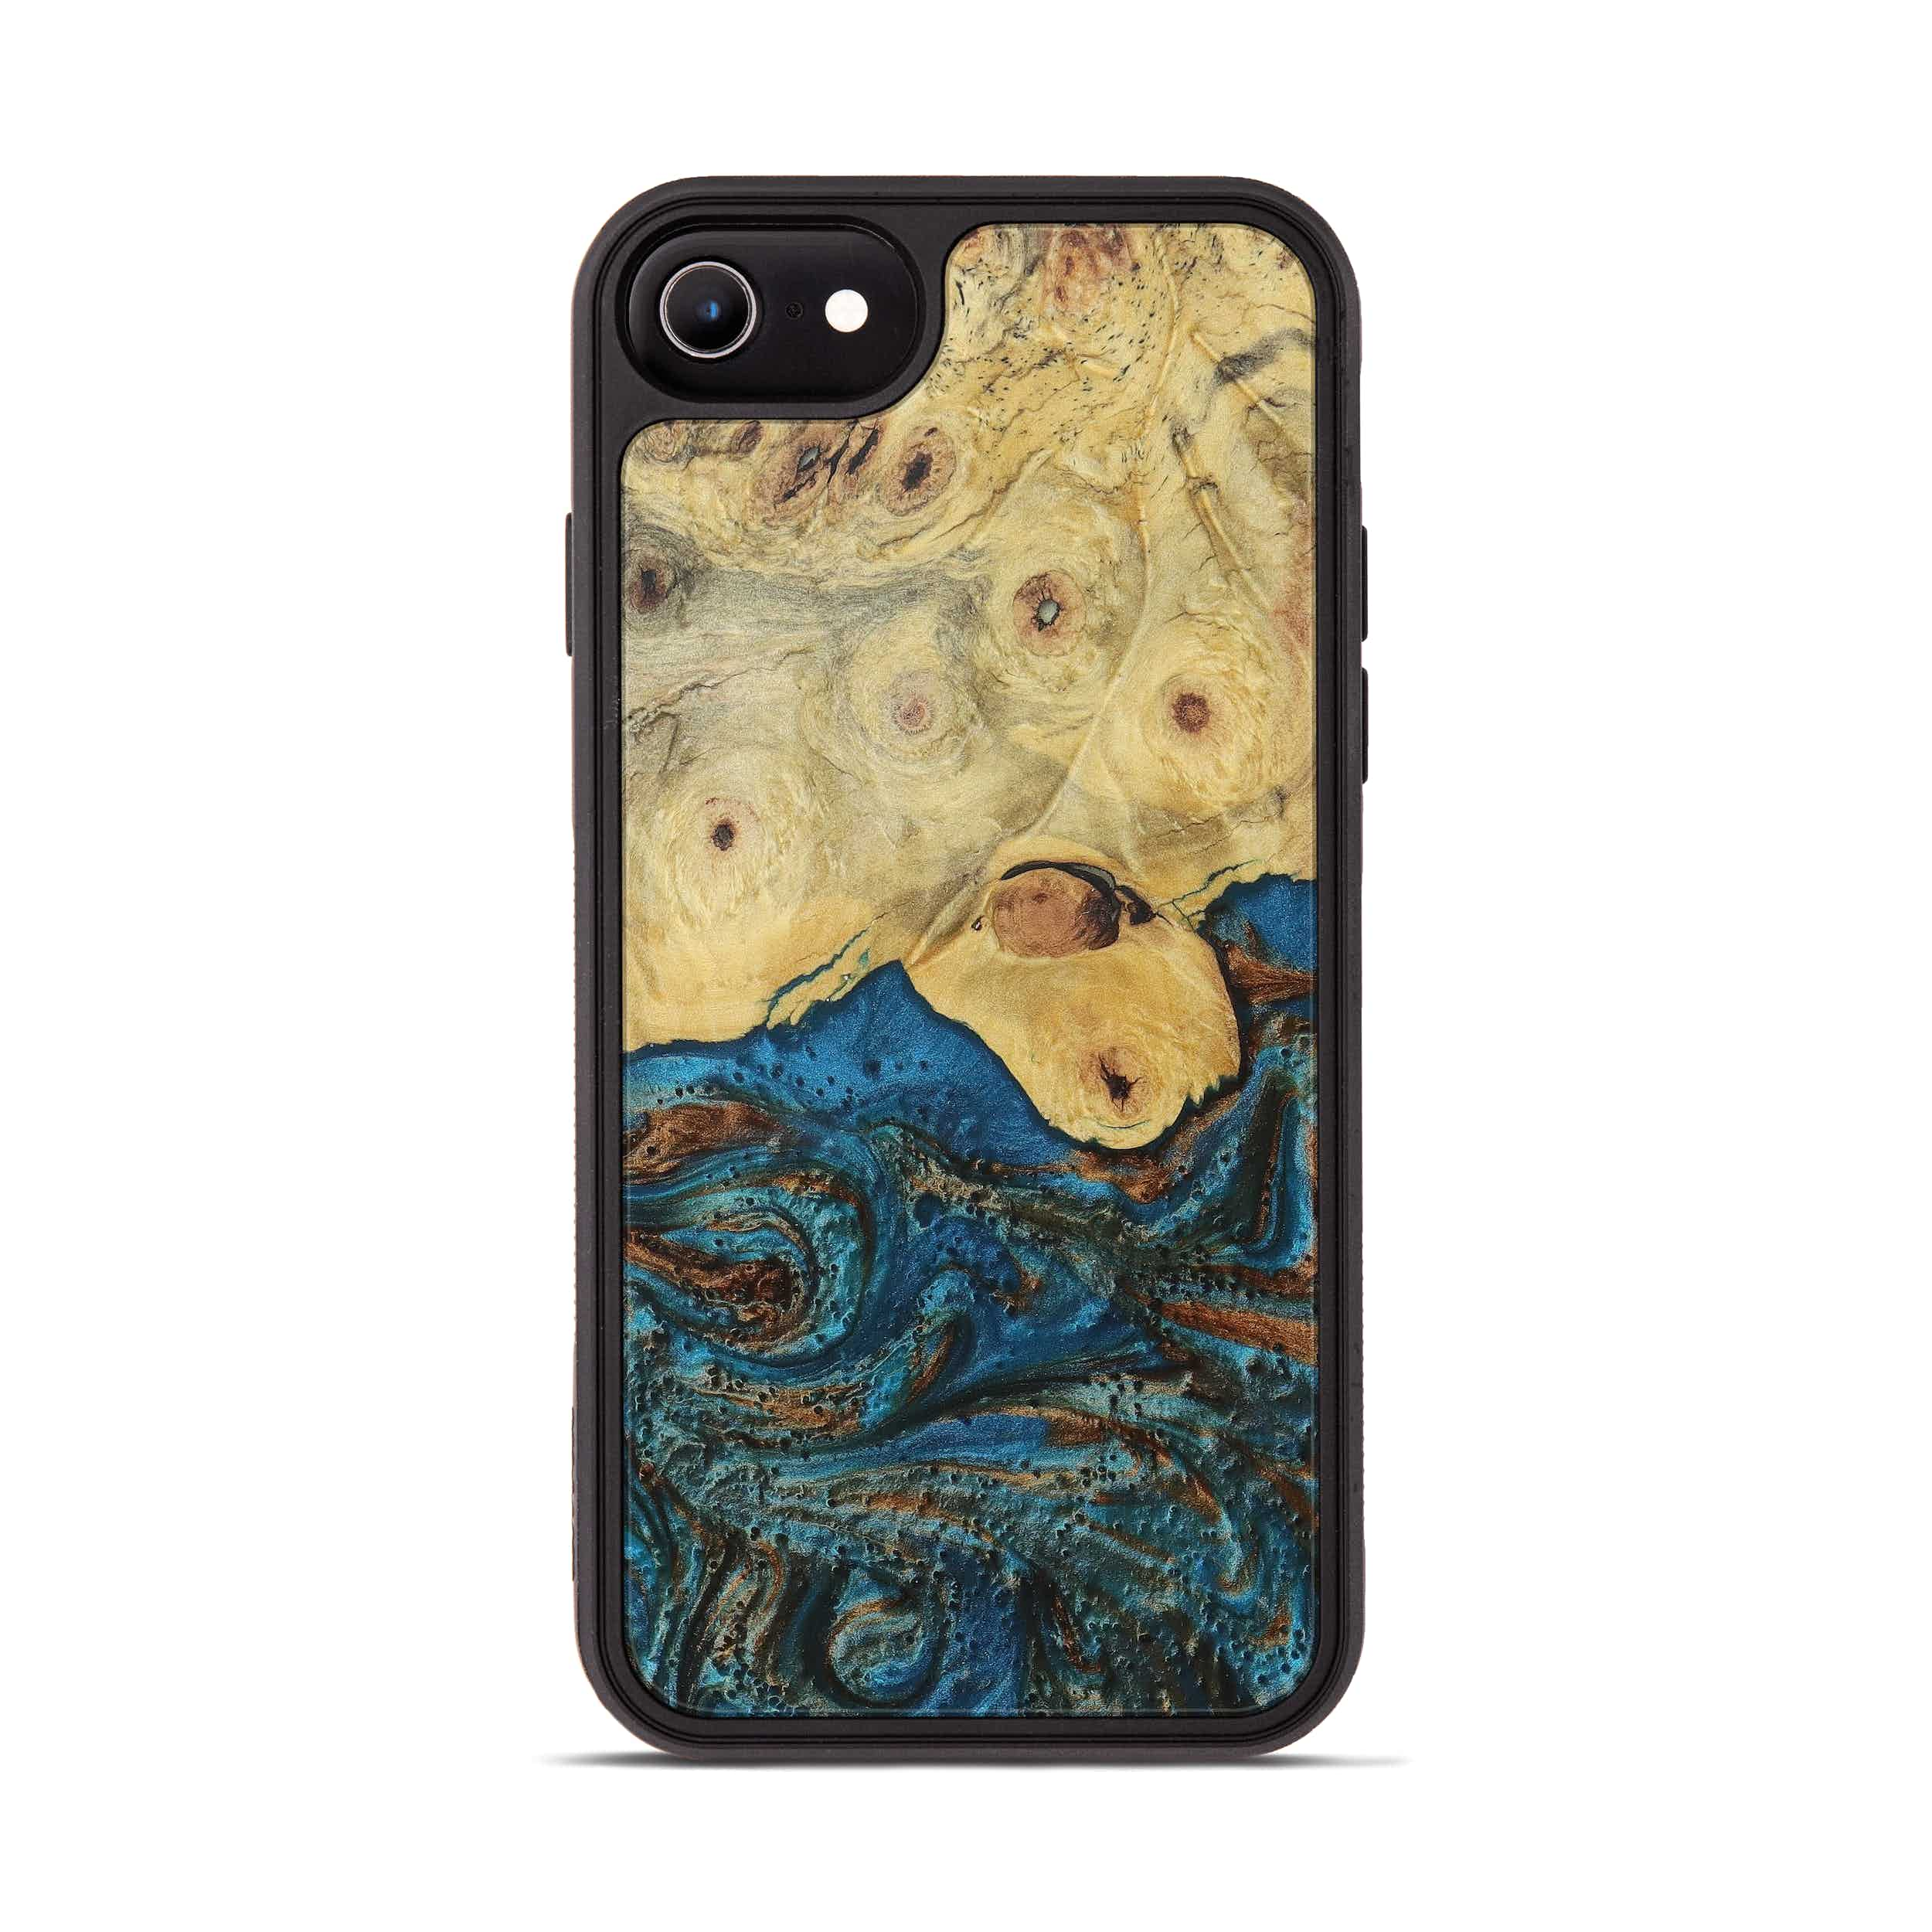 iPhone 8 Wood+Resin Phone Case - Tom (Teal & Gold, 394931)